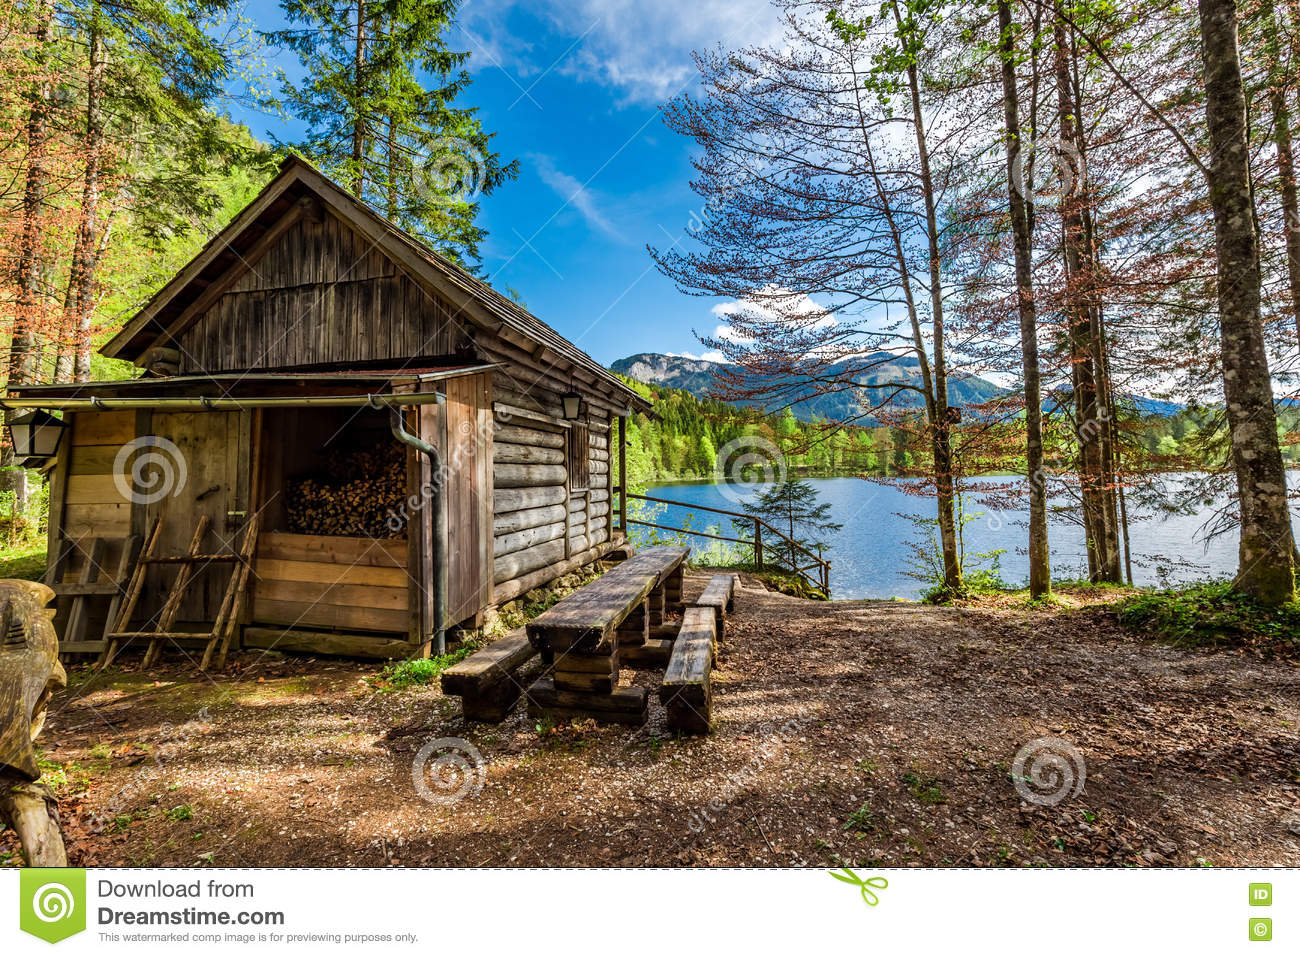 waldh lzerne h tte in den alpen am see stockbild bild von wasser h lzern 76953937. Black Bedroom Furniture Sets. Home Design Ideas